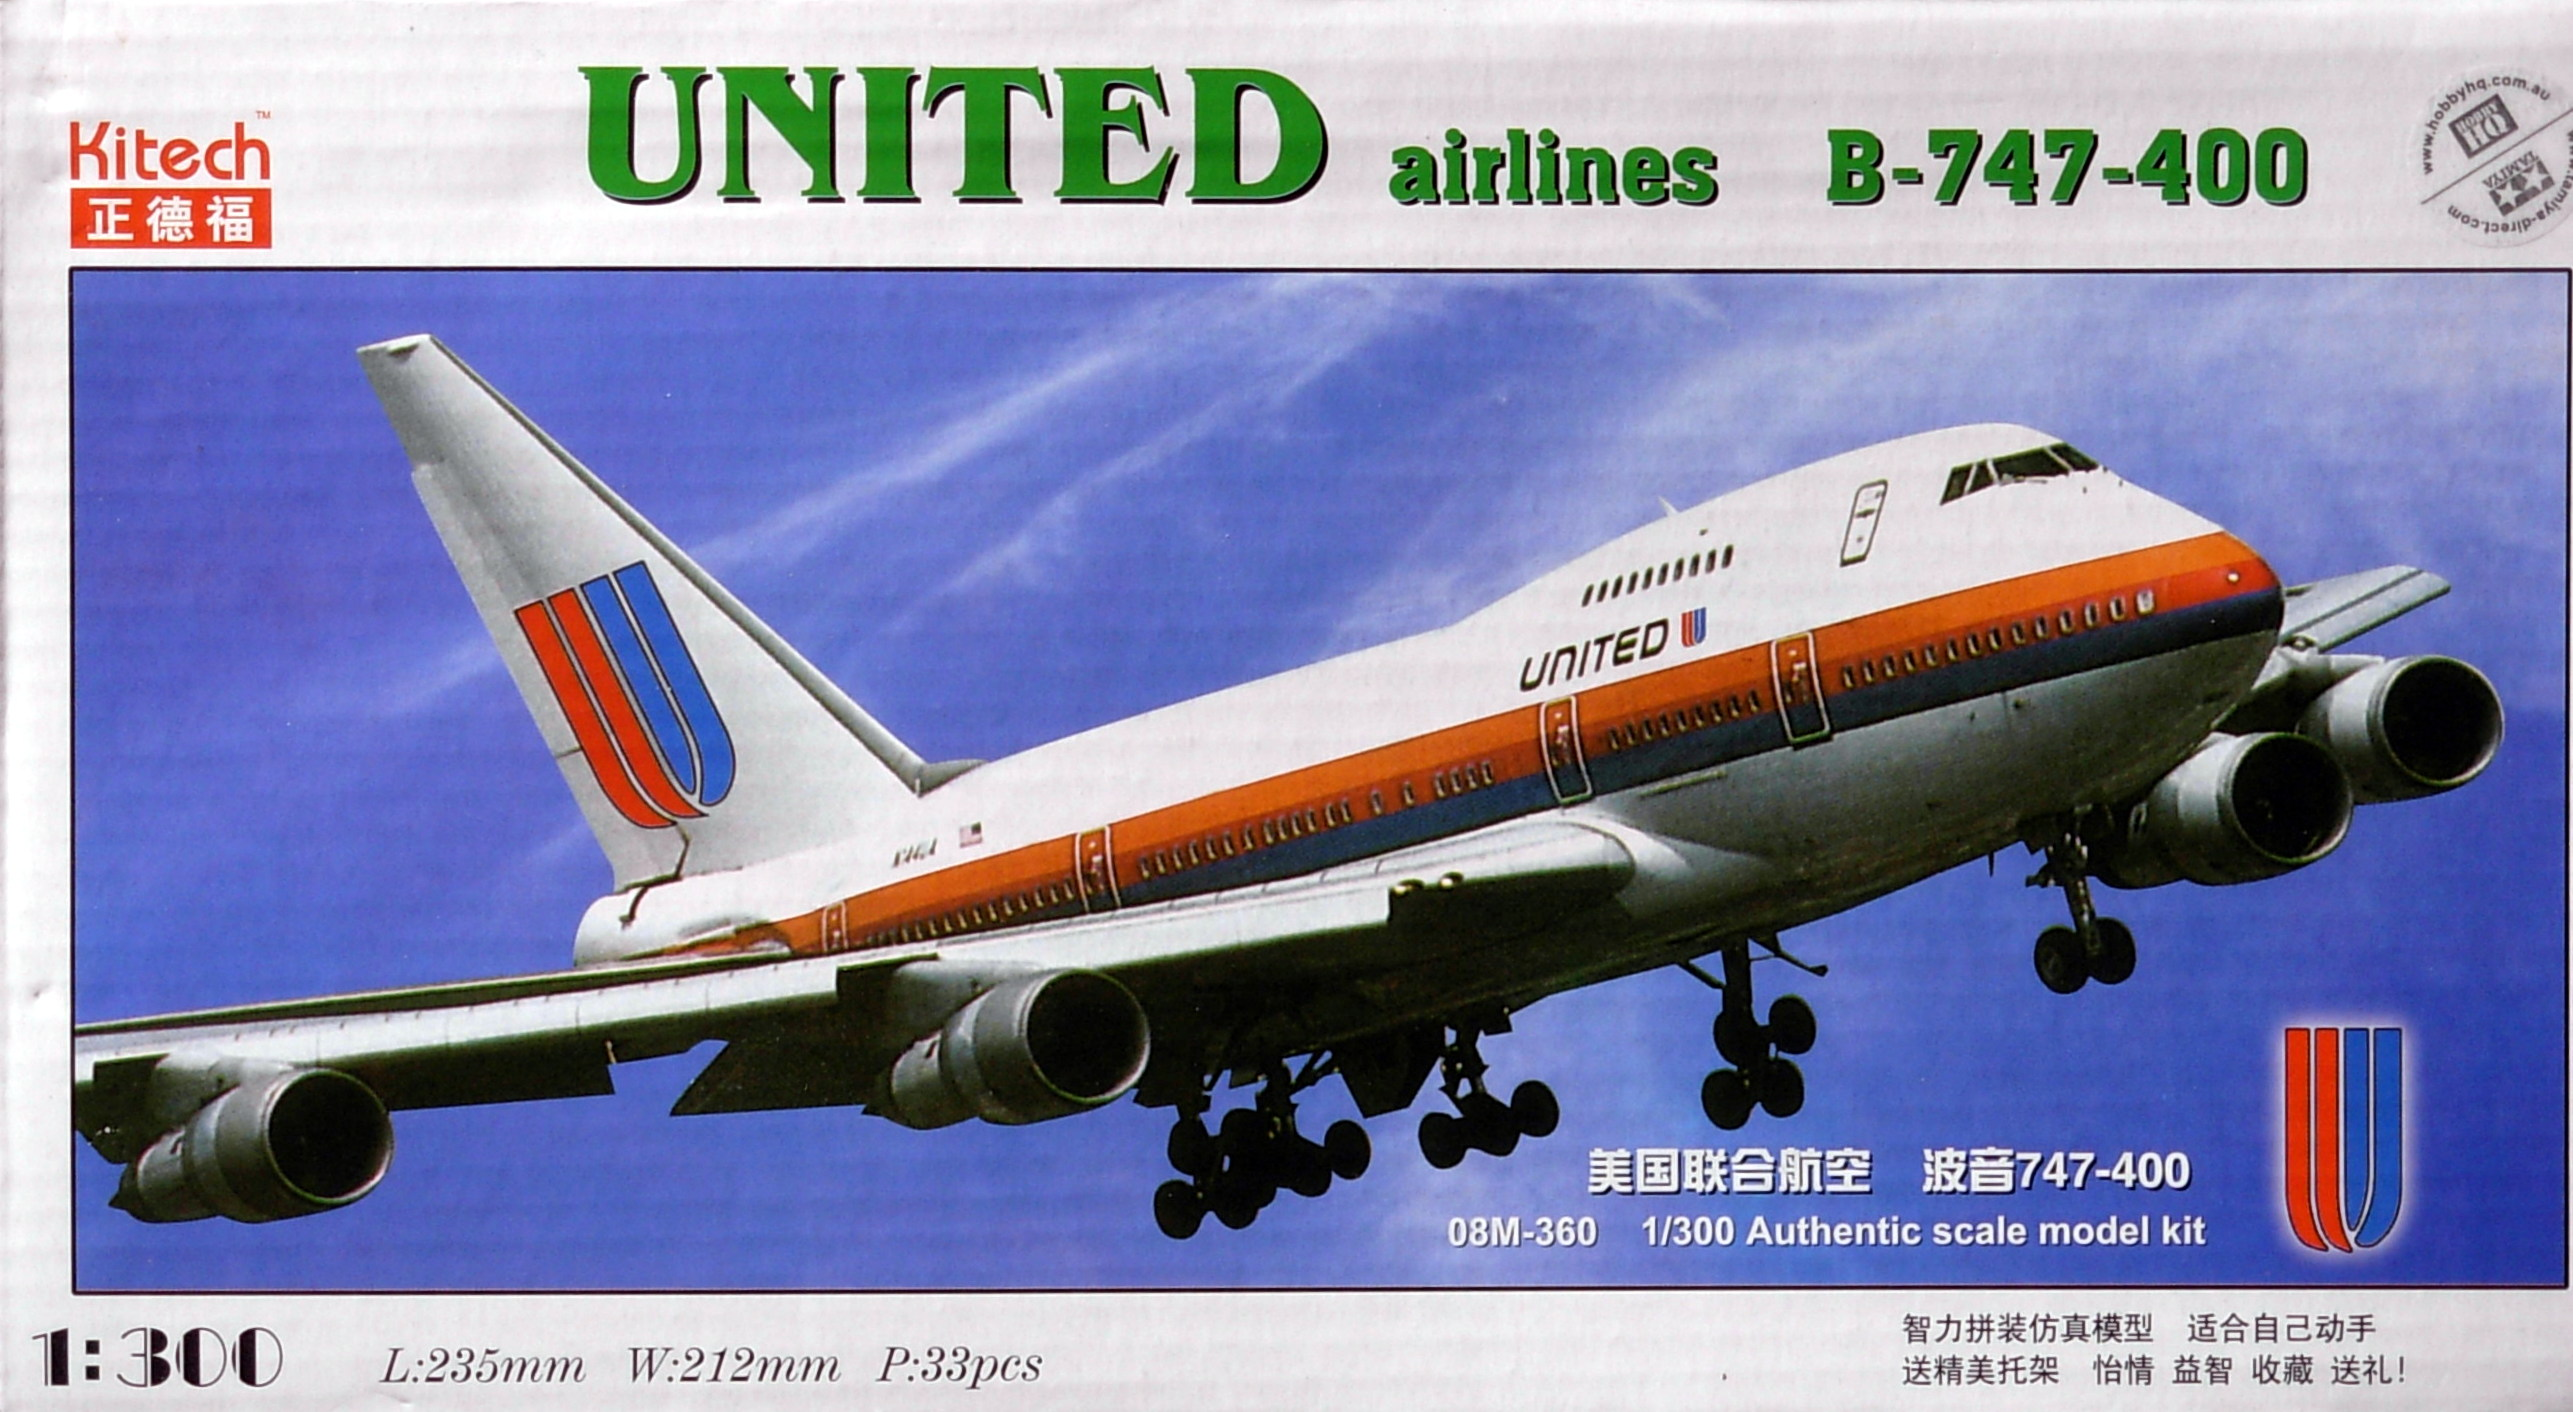 B-747-400 United Airlines